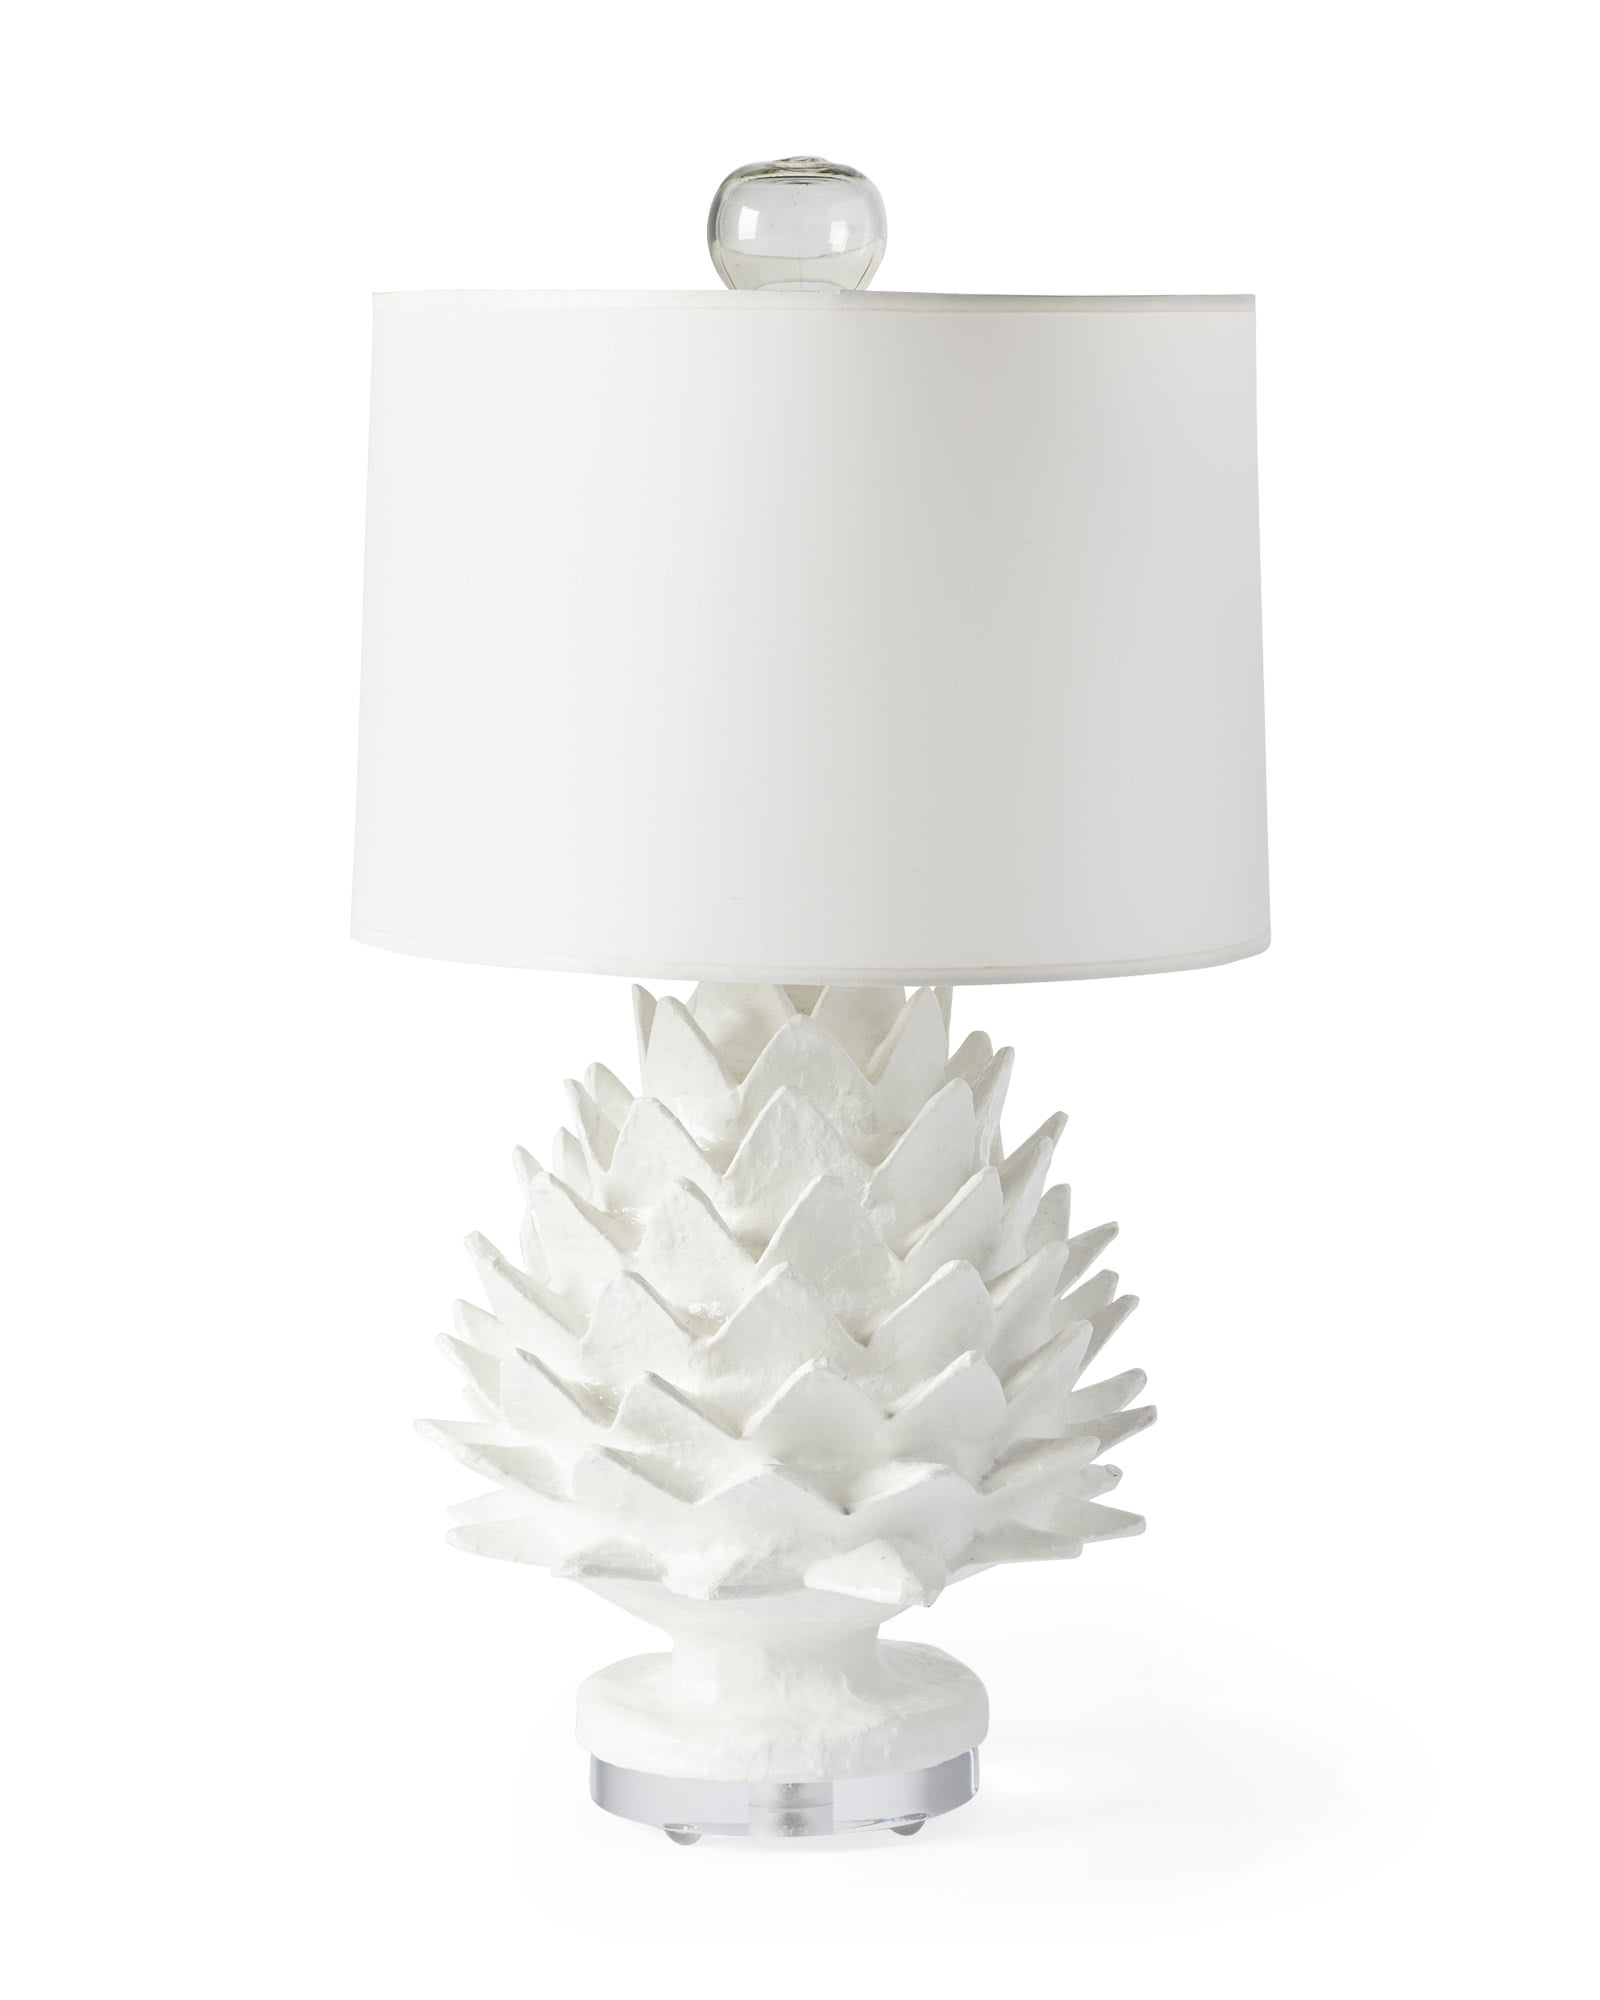 Artichoke Table Lamp,